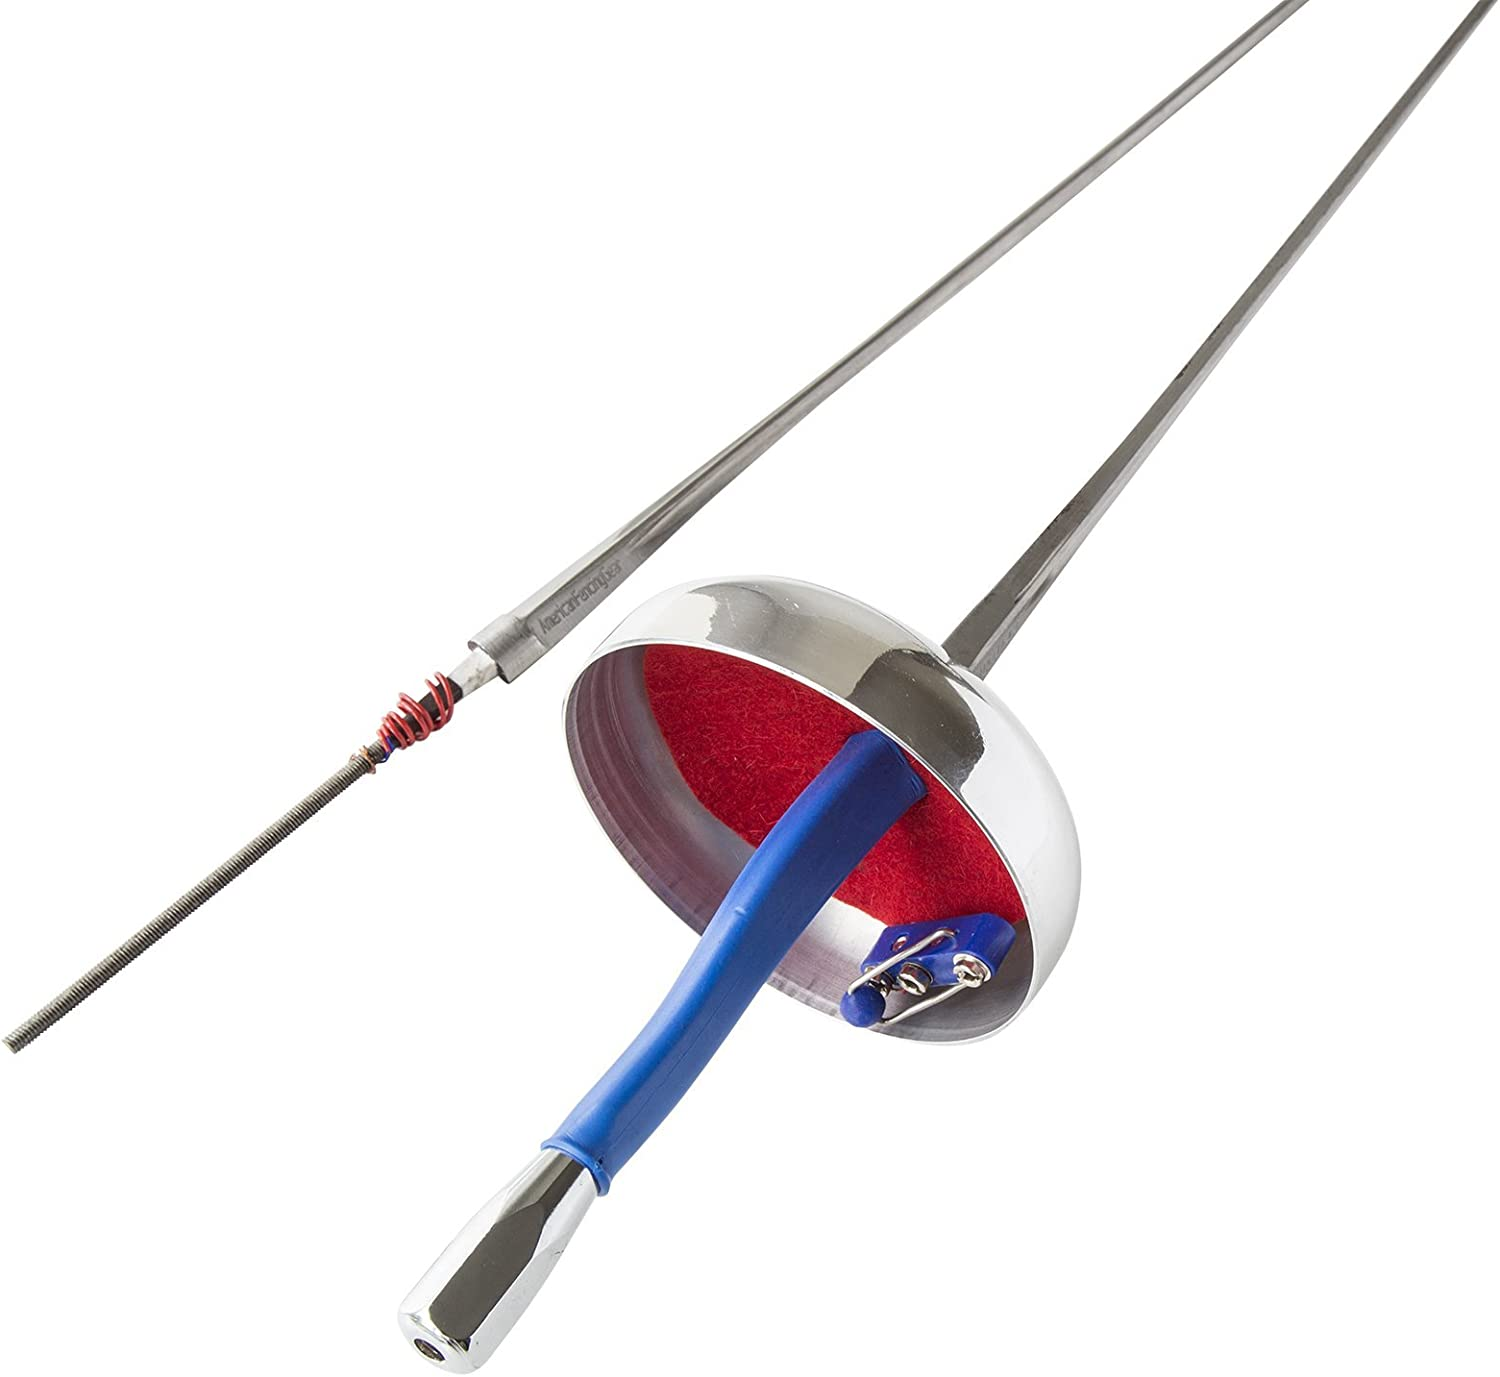 American Low price Fencing Gear Epee Electric Sword Weapon Nationa National products